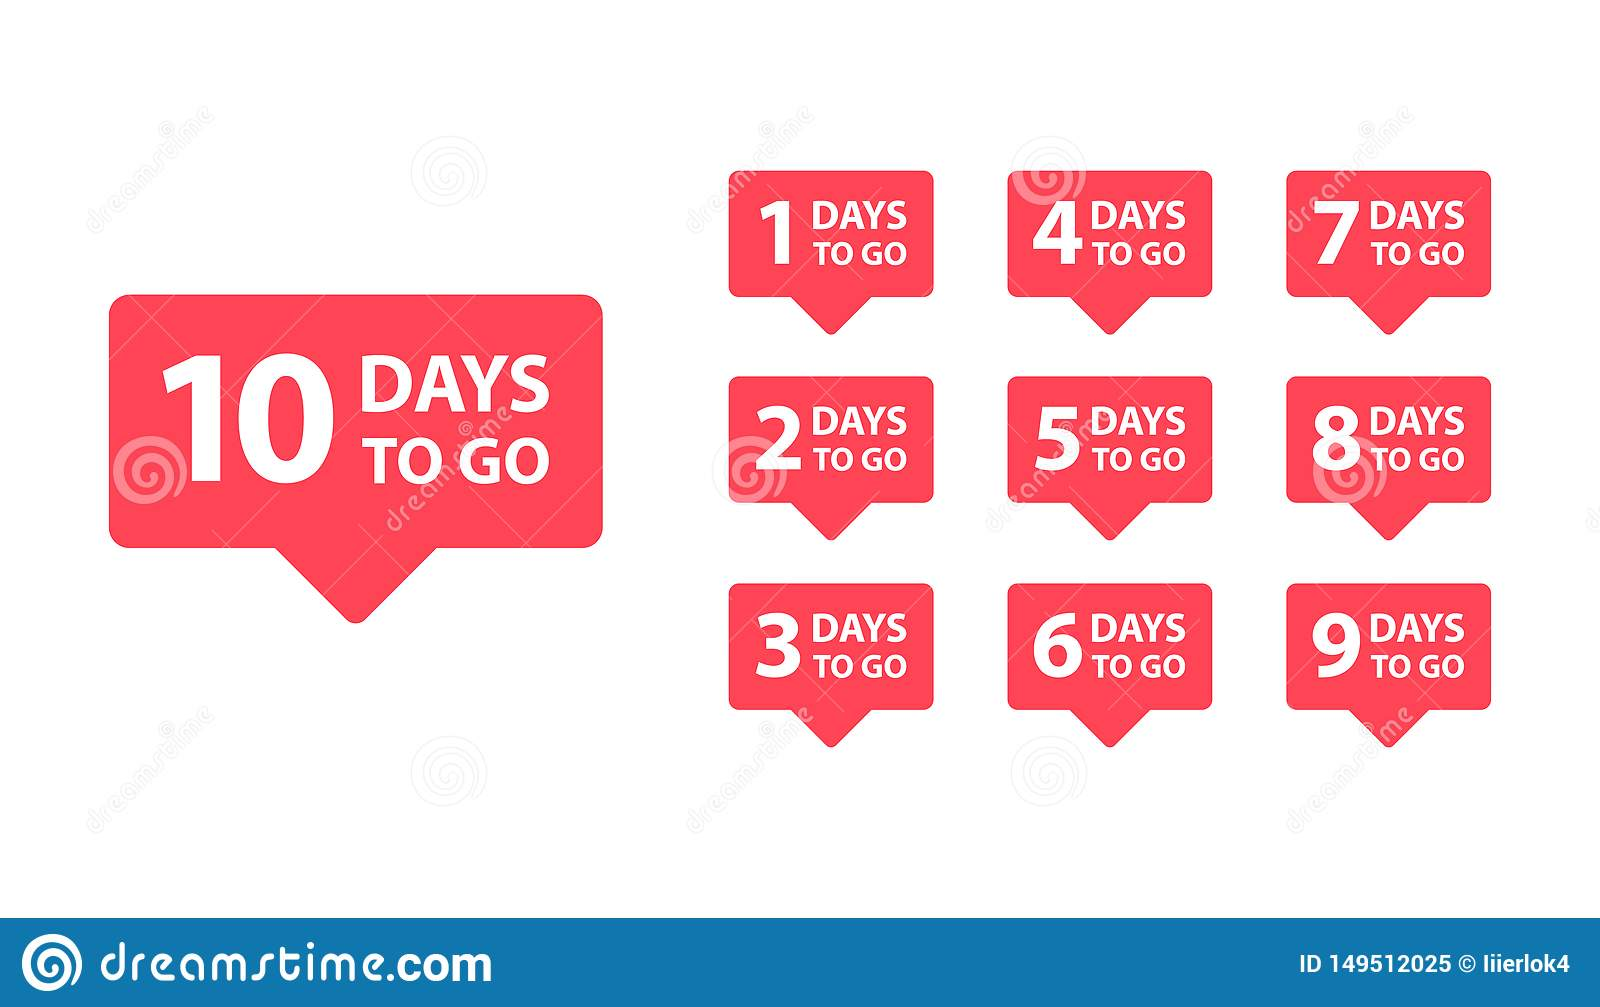 Number 1, 2, 3, 4, 5, 6, 7, 8, 9, 10, of days left to go. Collection badges sale, landing page, banner